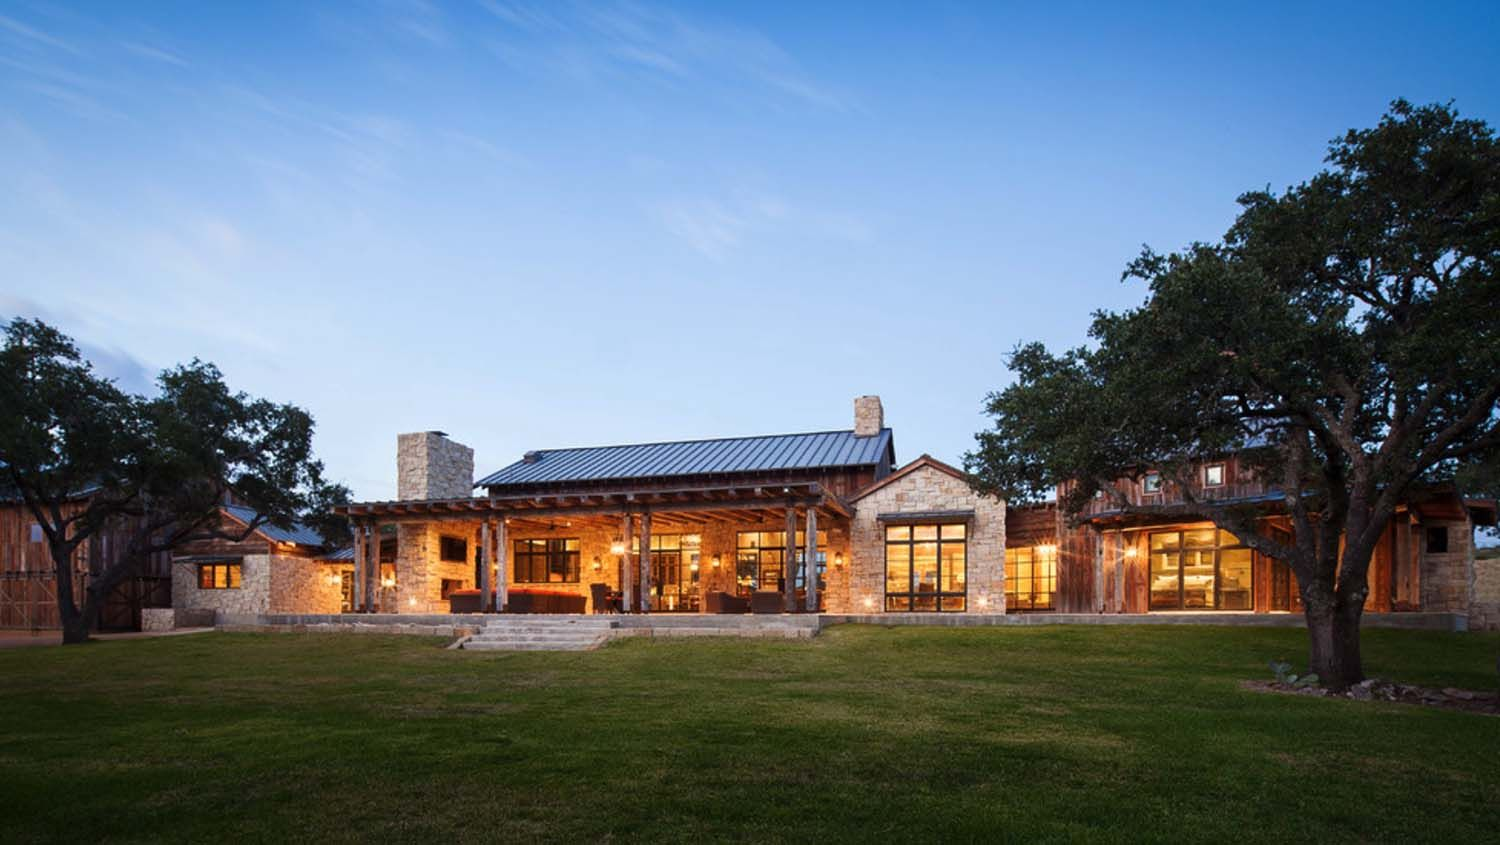 Modern rustic barn style retreat in texas hill country for Country barn builders